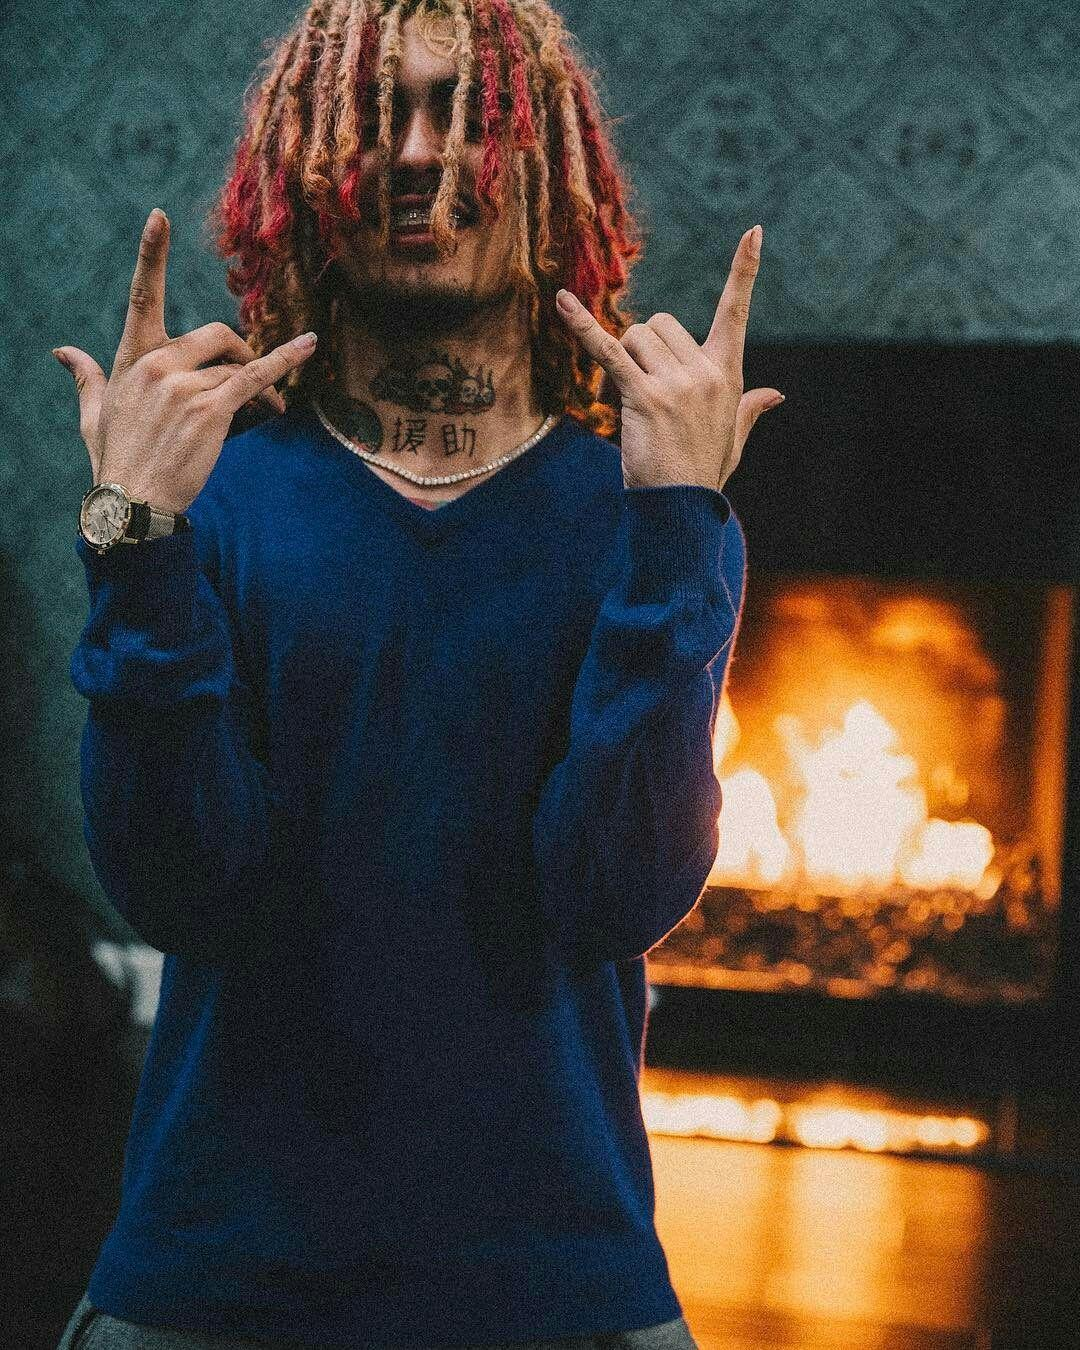 1080x1350 Free download Lil Pump Wallpapers [1080x1350] for your ...